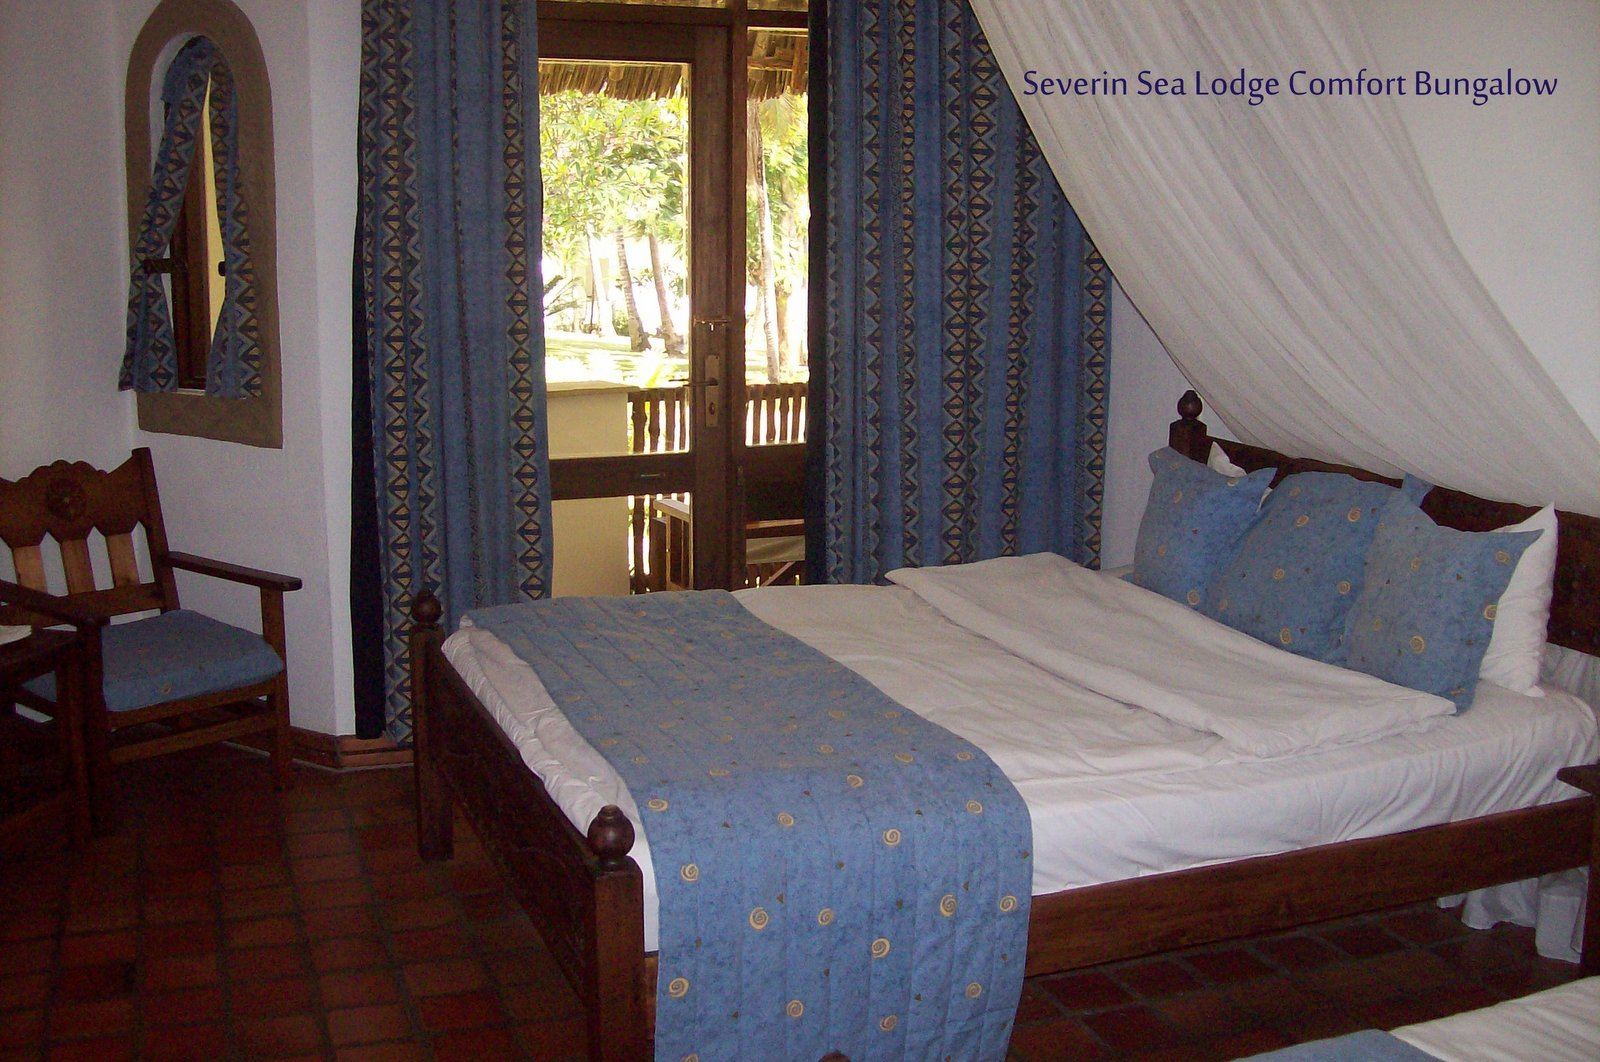 Severin Sea Lodge Comfort Bungalow